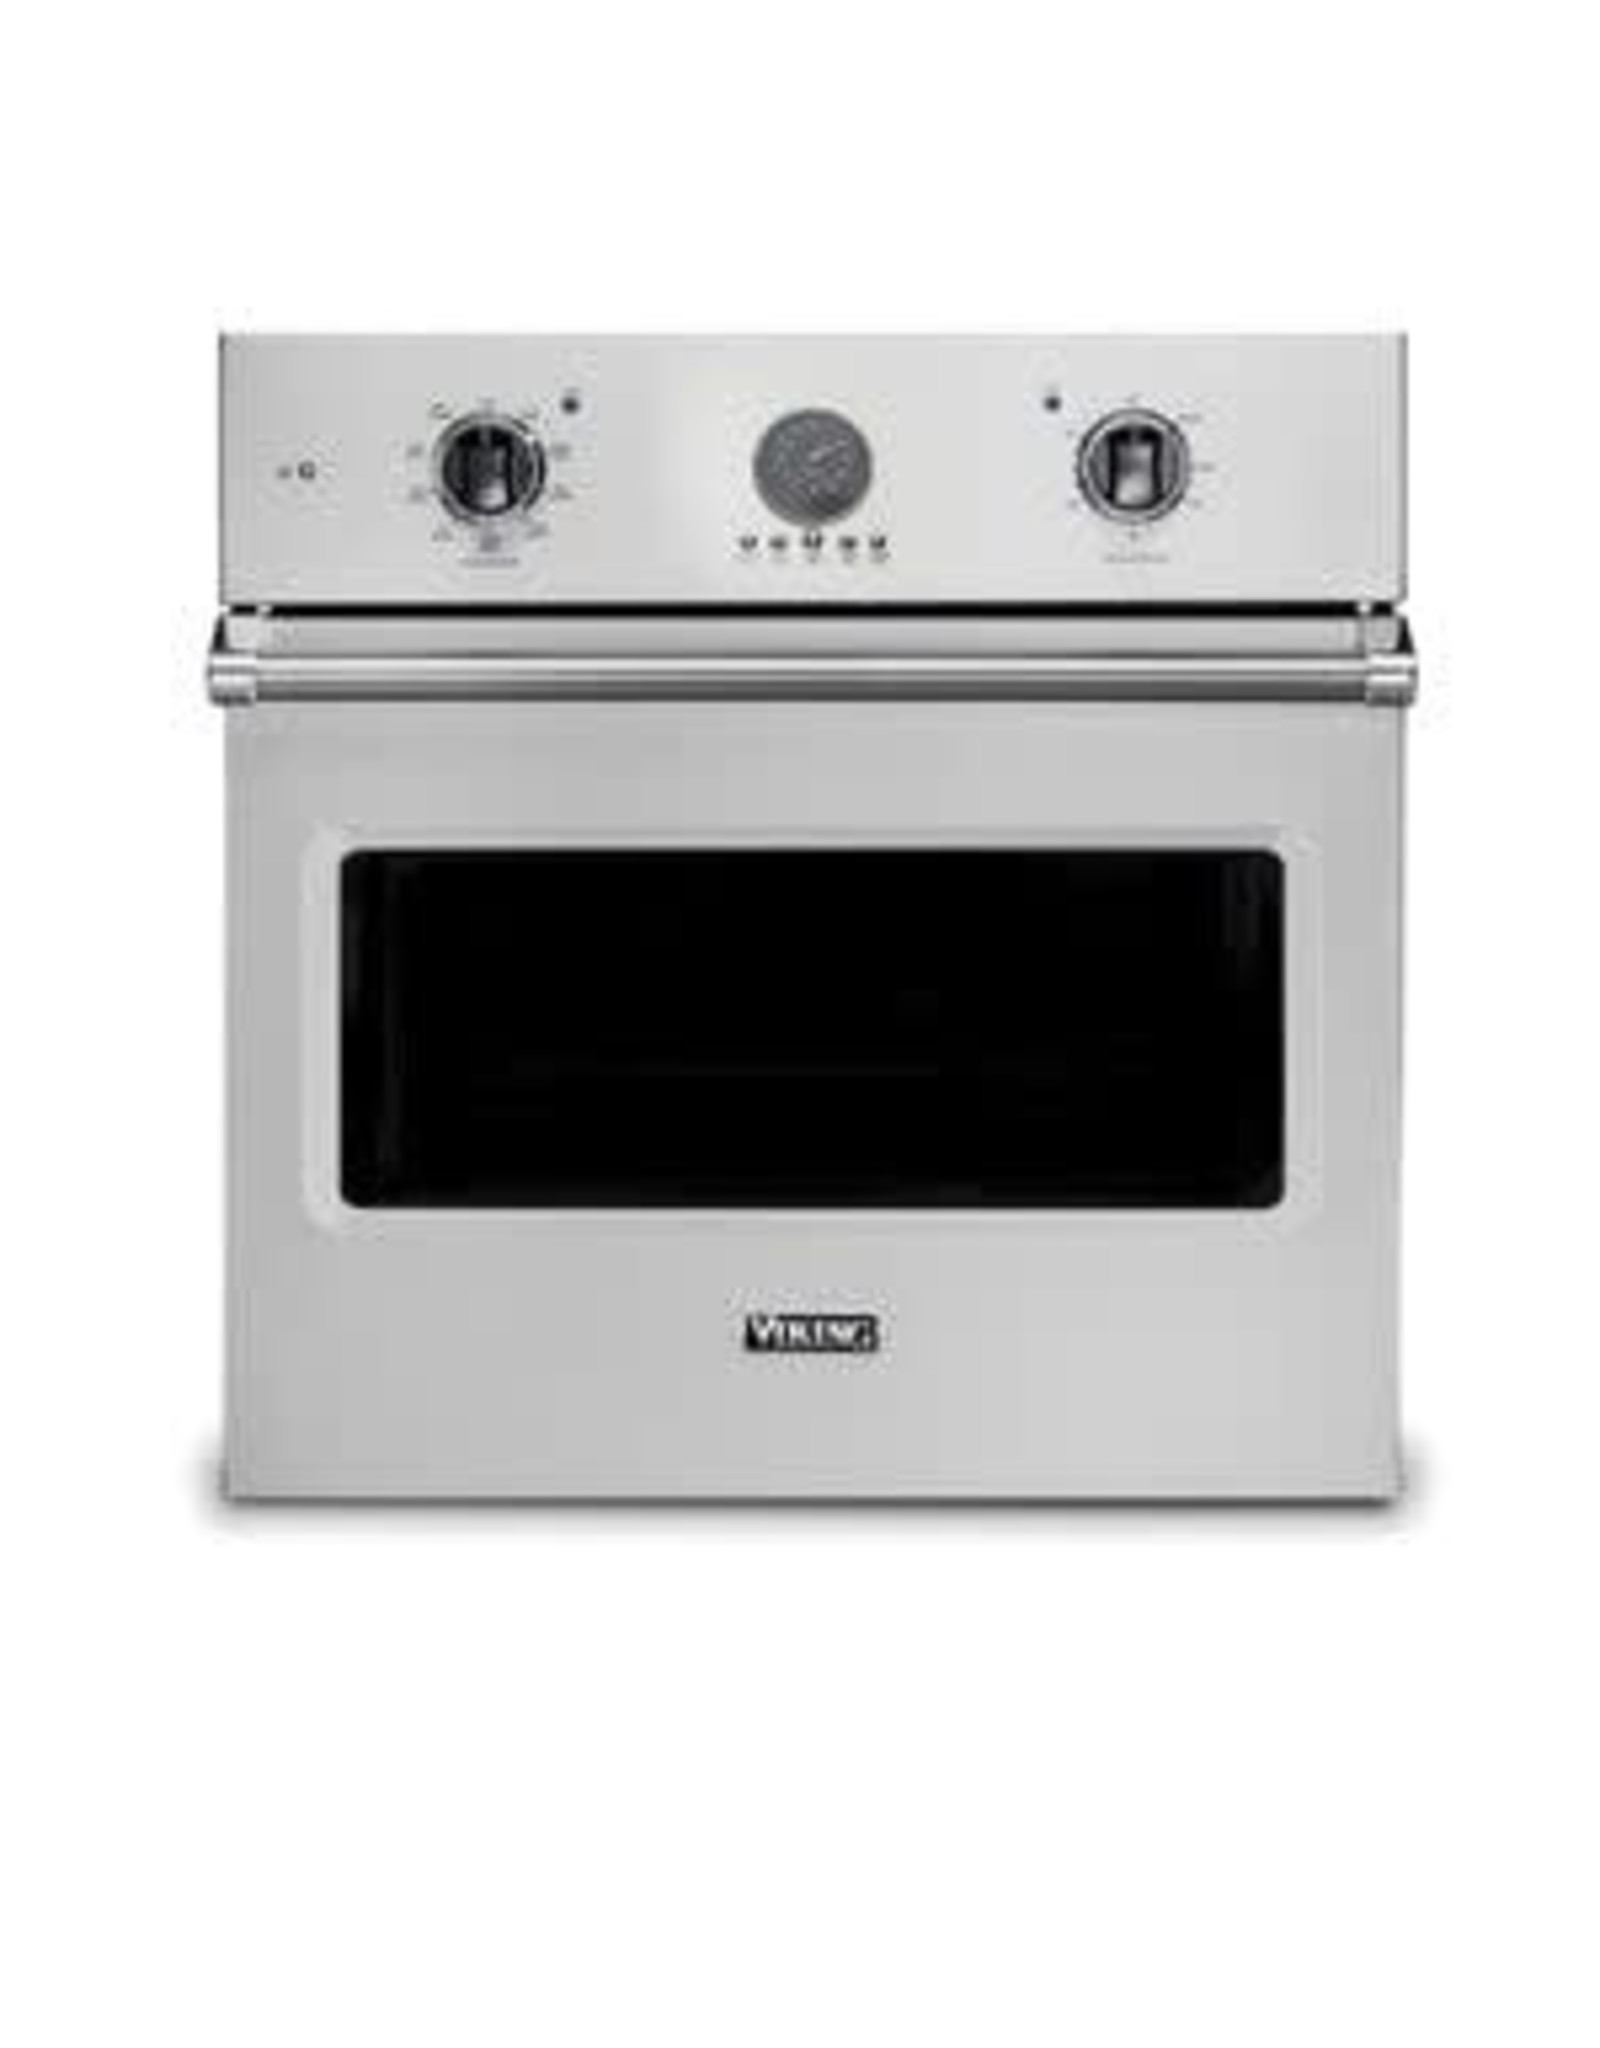 viking viking professional 5 series premiere 30 inch convection electric oven stainless steel vsoe530ss